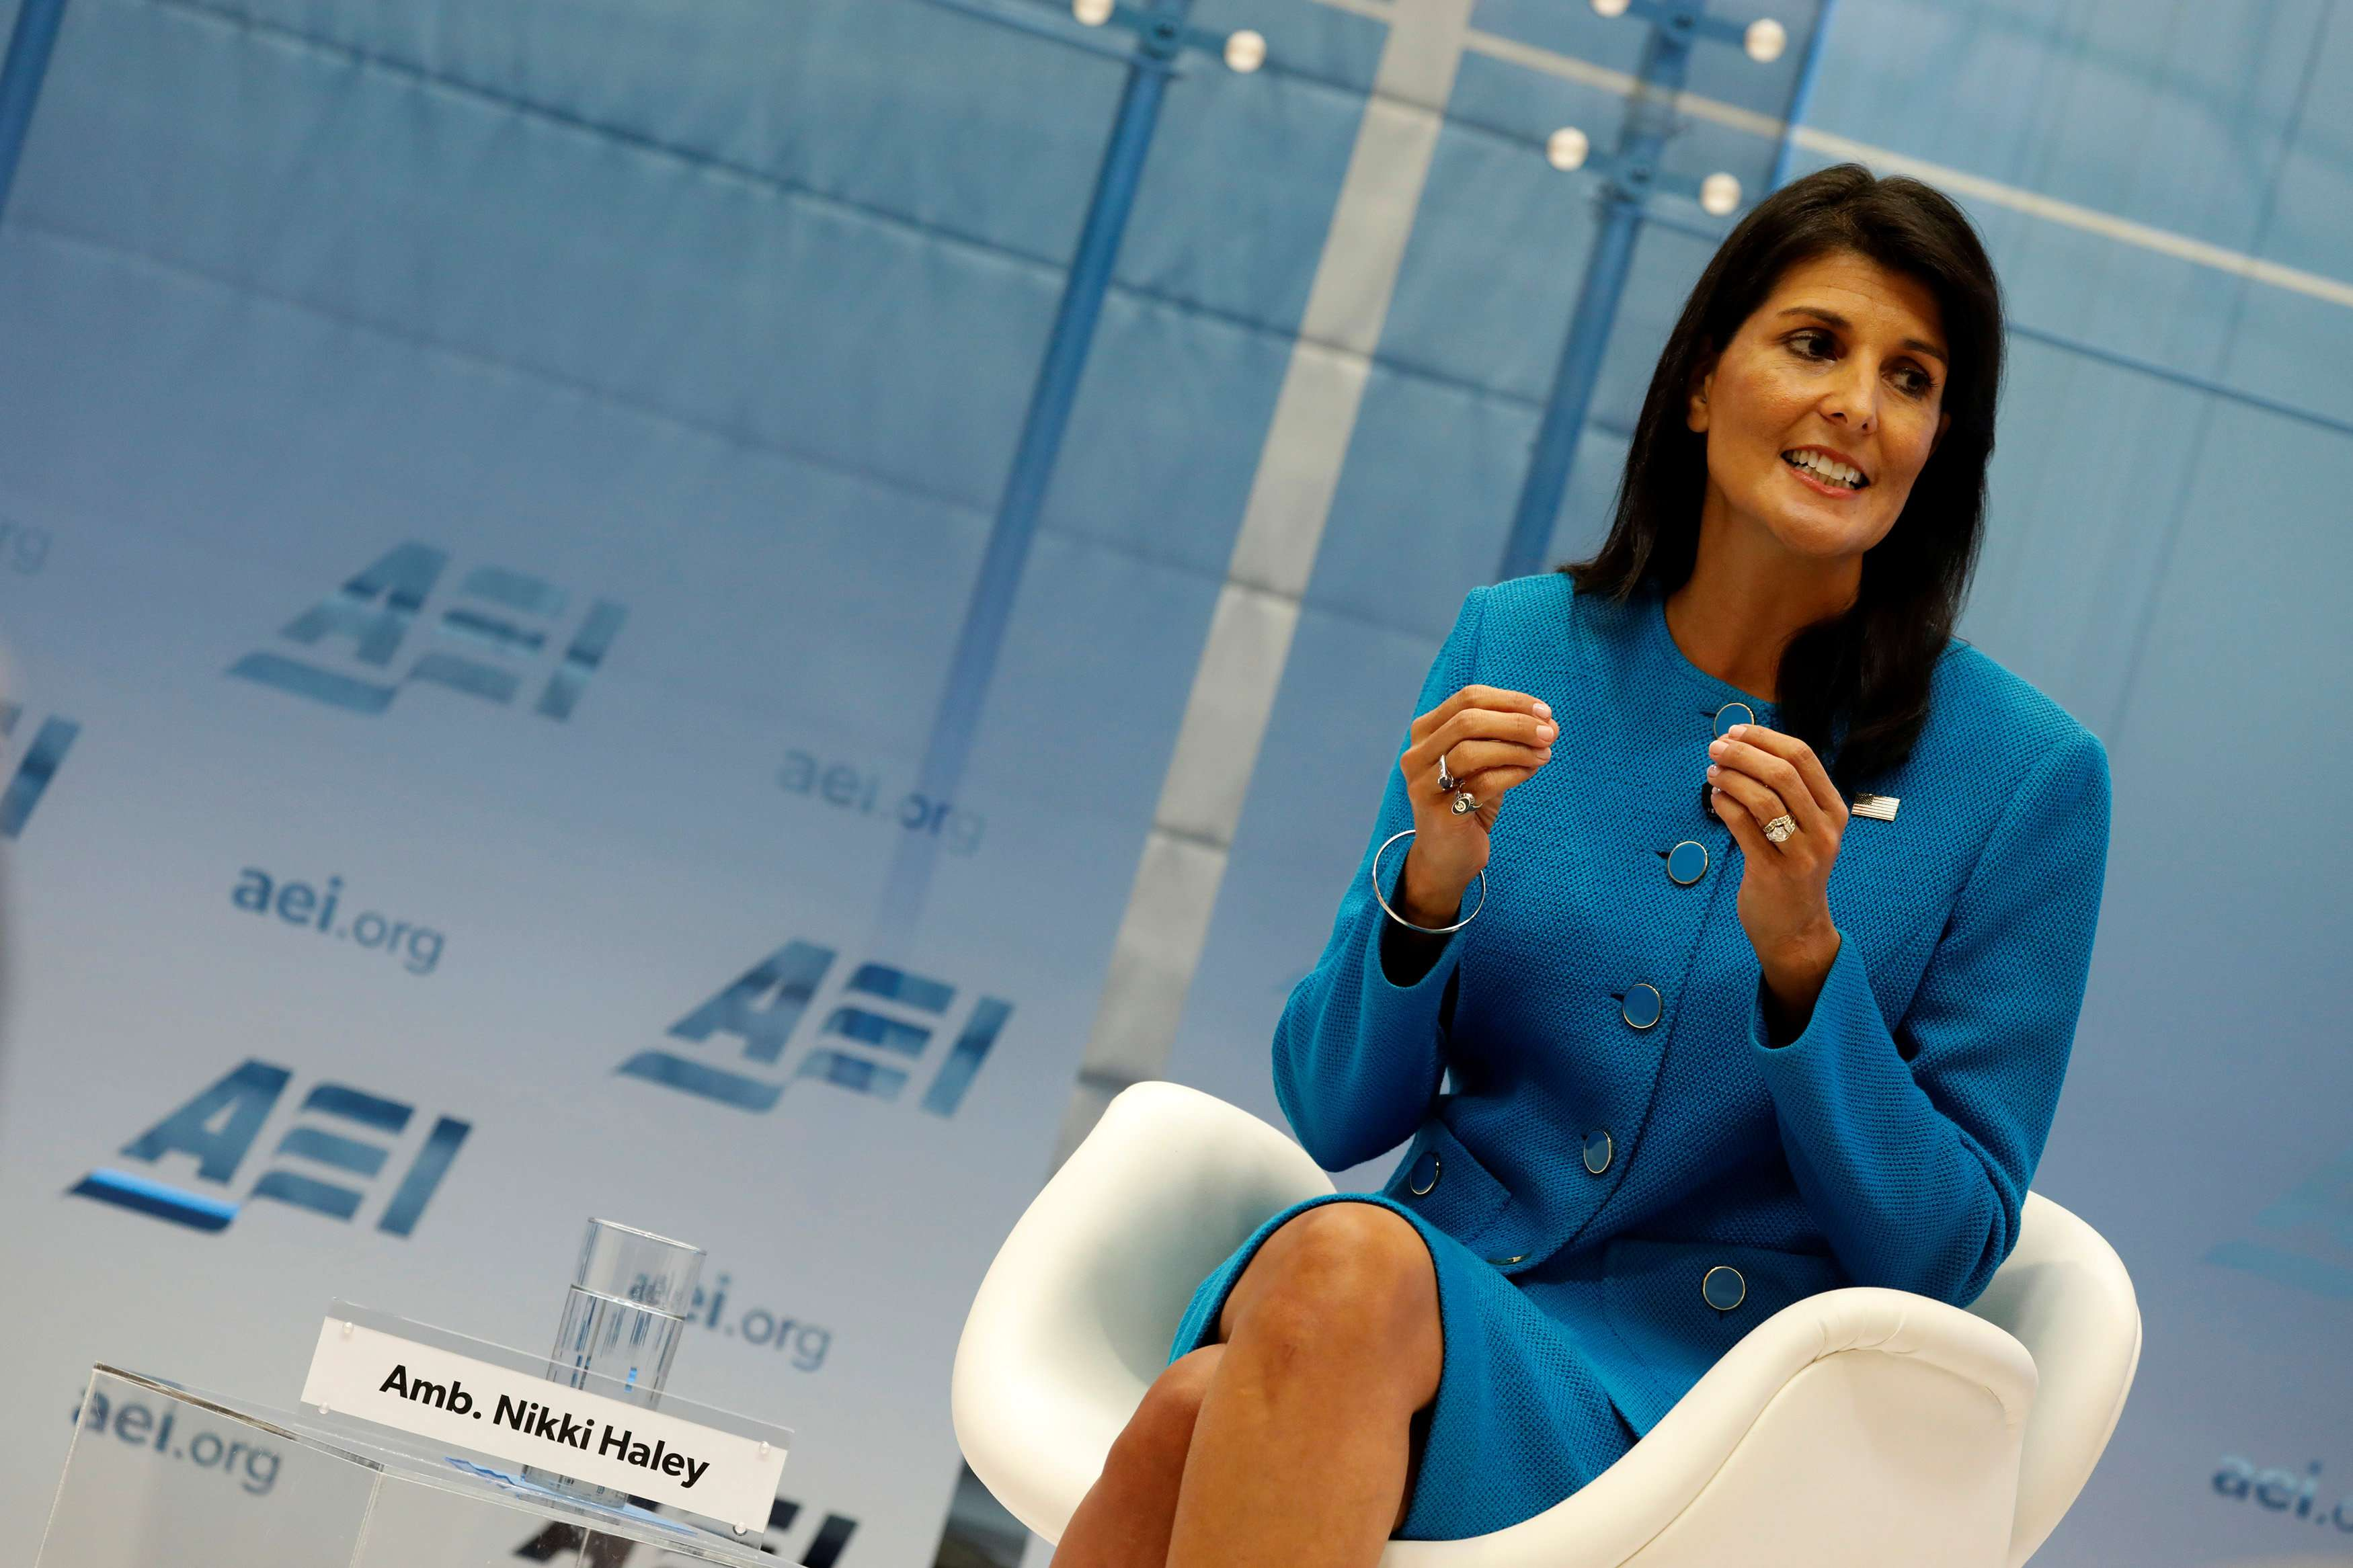 US Ambassador to the United Nations Nikki Haley speaks about the Iran nuclear deal at the American Enterprise Institute (AEI) in Washington, last September. (Reuters)